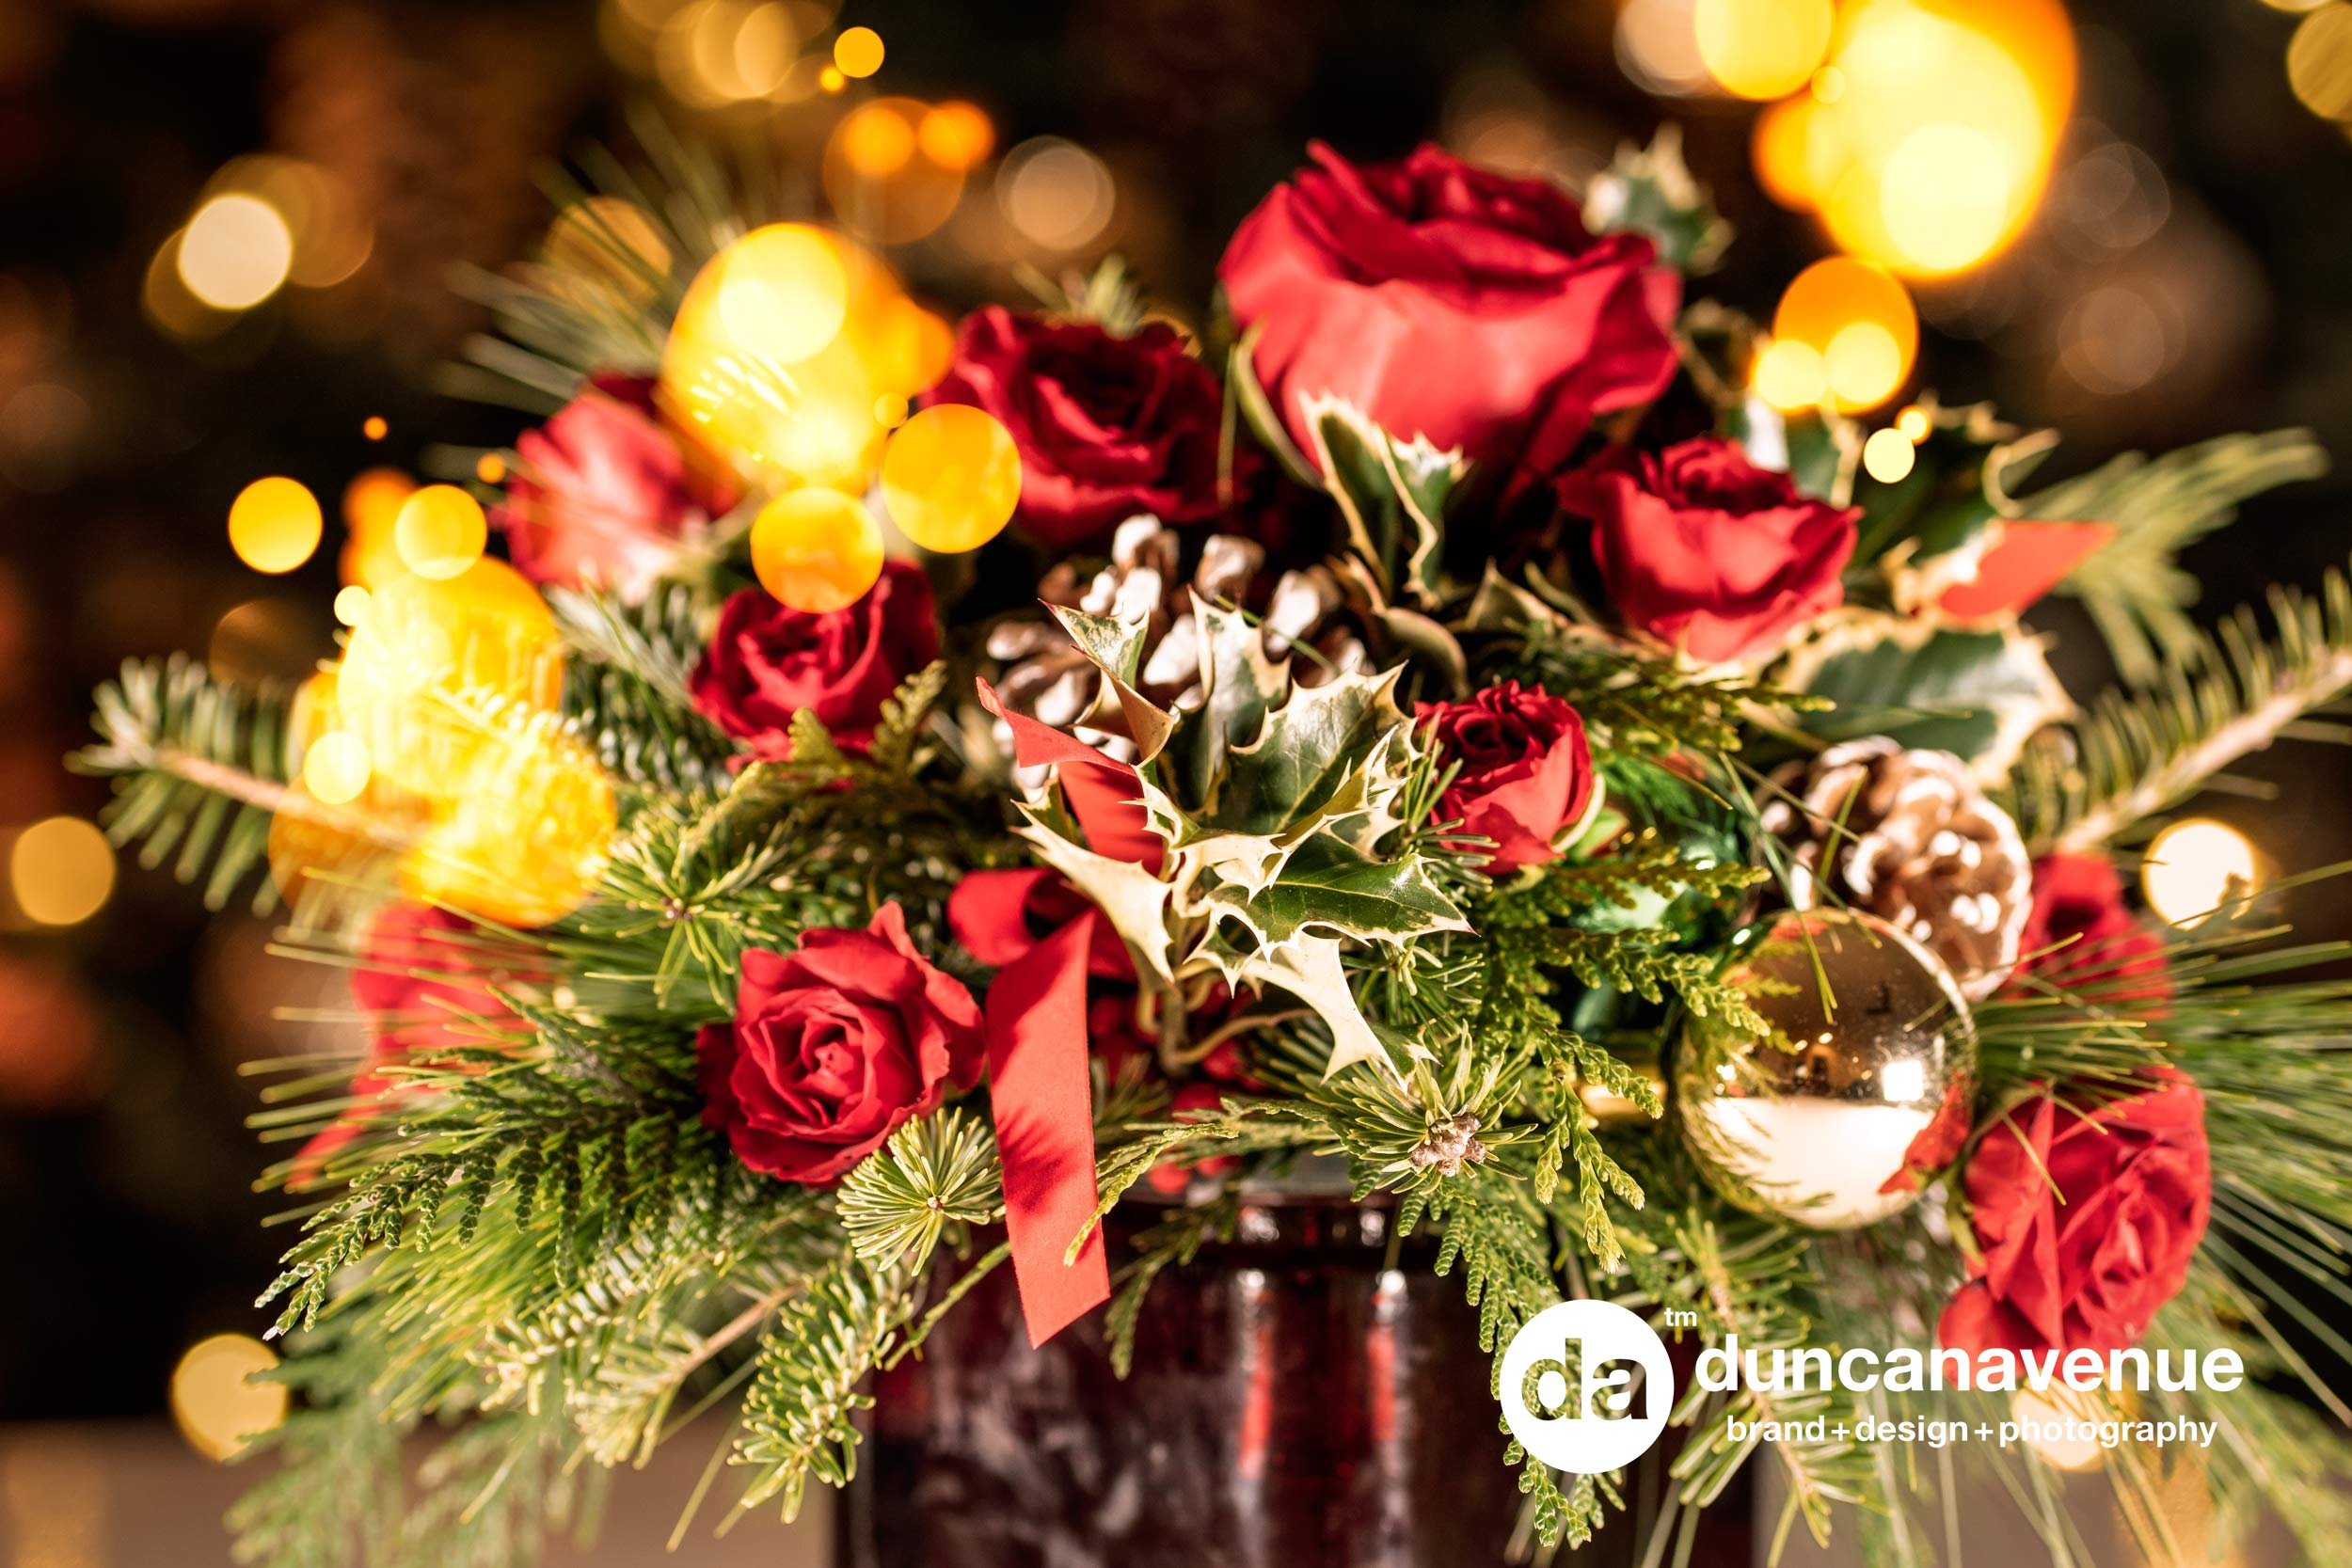 If you are lost when it comes to decorating ideas of your own, my biggest suggestion is to pick what you like most about Christmas and choose your home decorating style around that one thing. As the years go by, inspiration strikes, and you find more things to like or dislike about Christmas your decorations can change accordingly. Perhaps the greatest thing about decorating your home for Christmas is that nothing is set in stone. If it worked last year, that doesn't mean it will work for this Christmas and there is no reason you should feel compelled to do it. Some great ideas or themes for Christmas home decorating include the following: snow globes, cherubs, angels, Santa Clauses, snowmen, birds, candles, wreathes, and stockings. While this is by no means an exhaustive list of Christmas decorations it is a good place to start when ideas are needed. Favorites include cartoon characters, gingerbread men, gingerbread houses, balls, grape clusters, and ribbons. If you want to create a truly special style of home decorating for Christmas try a homemade Christmas. This means that all the ornaments, centerpieces, wreaths, garlands, and decorations are made by hand rather than purchased whole. It will certainly make an impression on visitors and you and your family can enjoy the process of creating your very own Christmas decorations for the holiday season. If you are looking for the best flower shop in the Hudson Valley, check out Mystic Rose Florist in Montgomery, NY. They are famous for their festive yet elegant fully decorated Christmas tree arrangements that with convenient home delivery option can certainly bring the spirit of Christmas right to your doorstep. There are so many wonderful ideas, tips, and tricks when it comes to decorating your home for Christmas that it is incredibly difficult to point to one specific idea and say 'this is it'. However, finding a theme that speaks to your heart is what Christmas is all about. Well that and spending time with those who mean the most to you in the world.